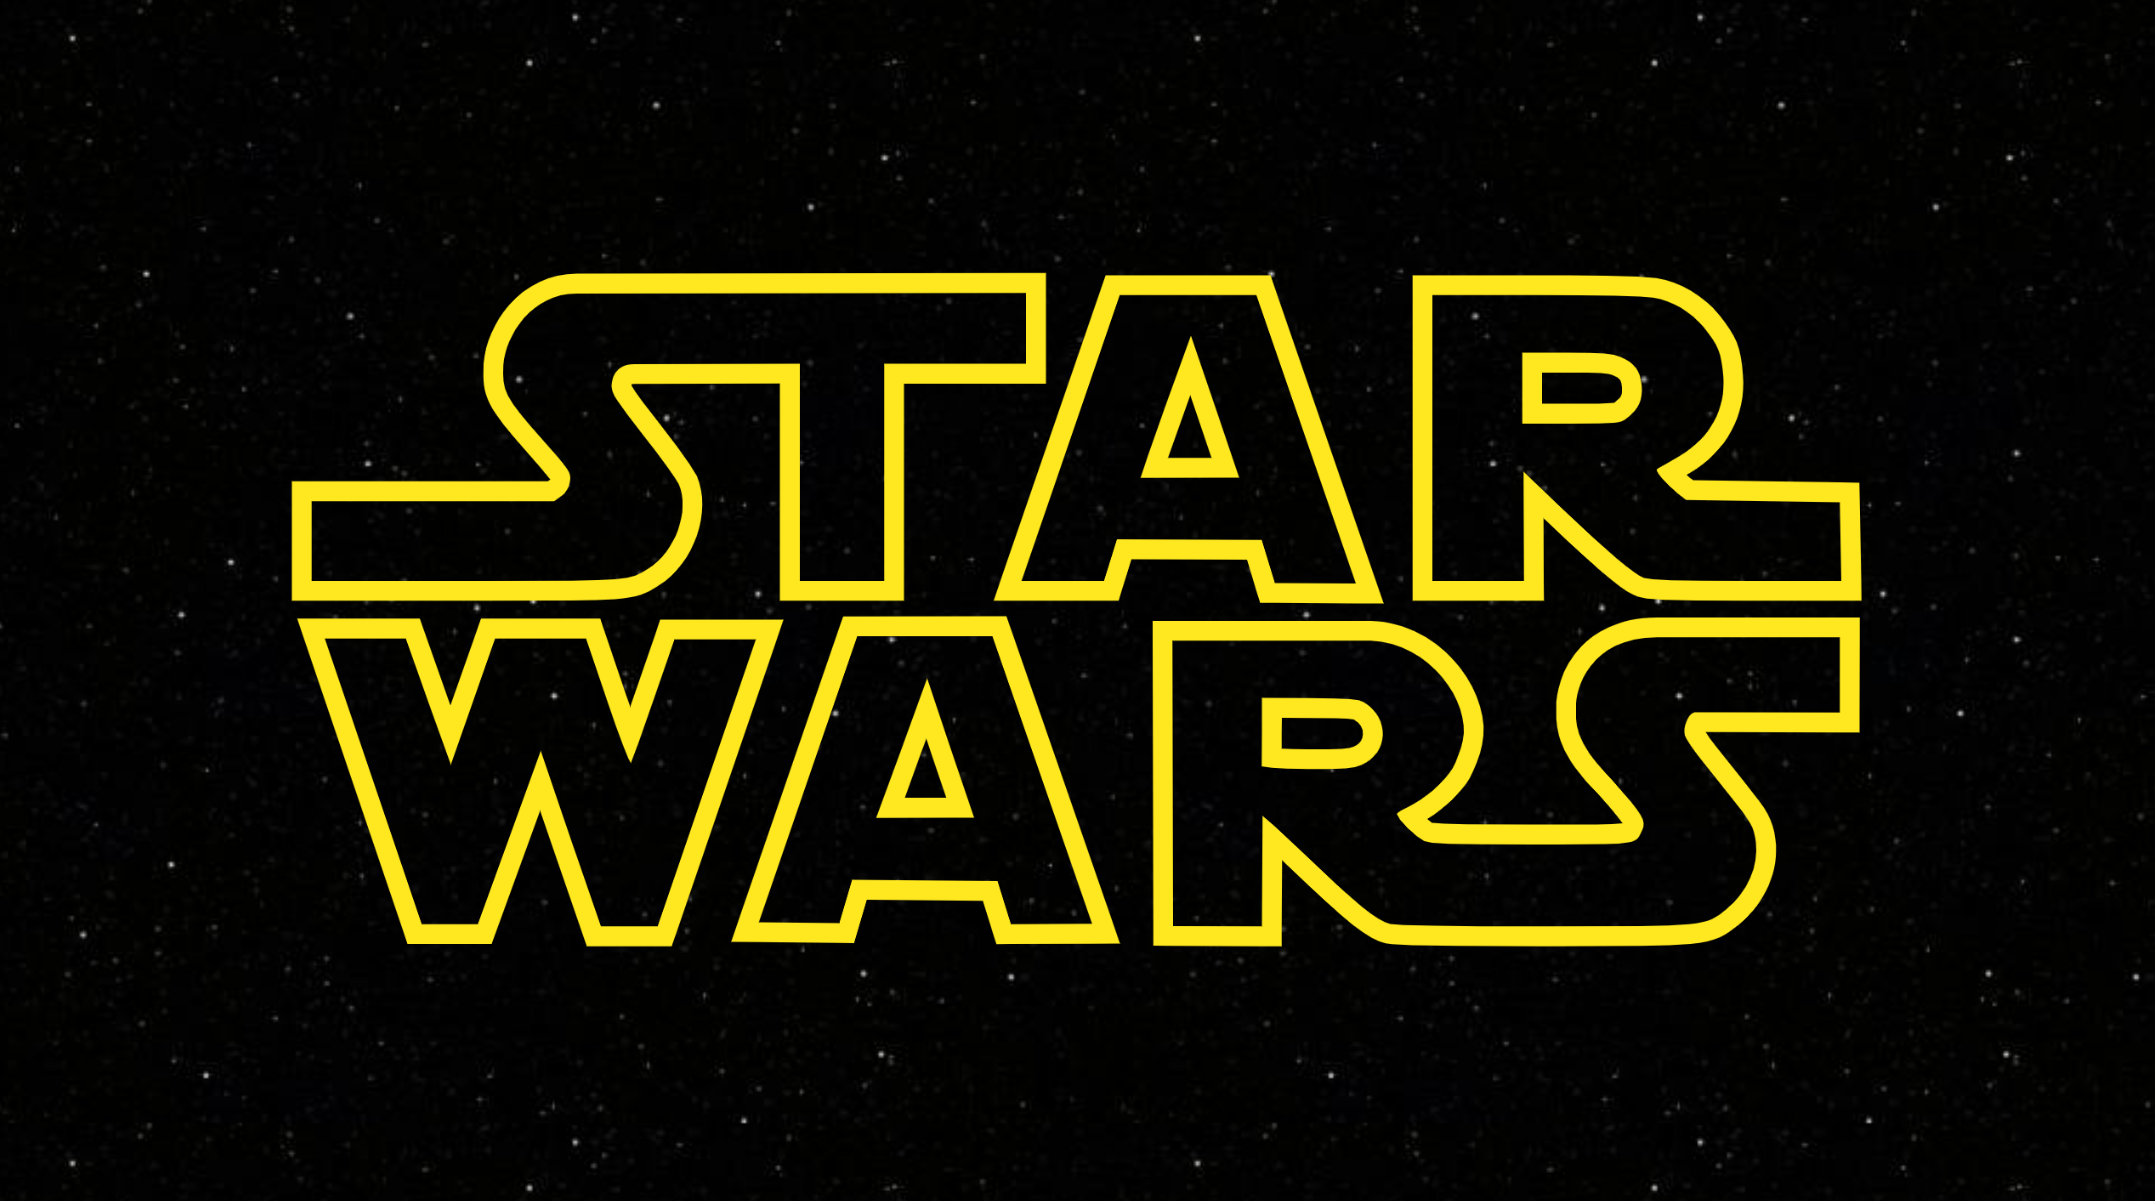 Star Wars Style Text Scrolling